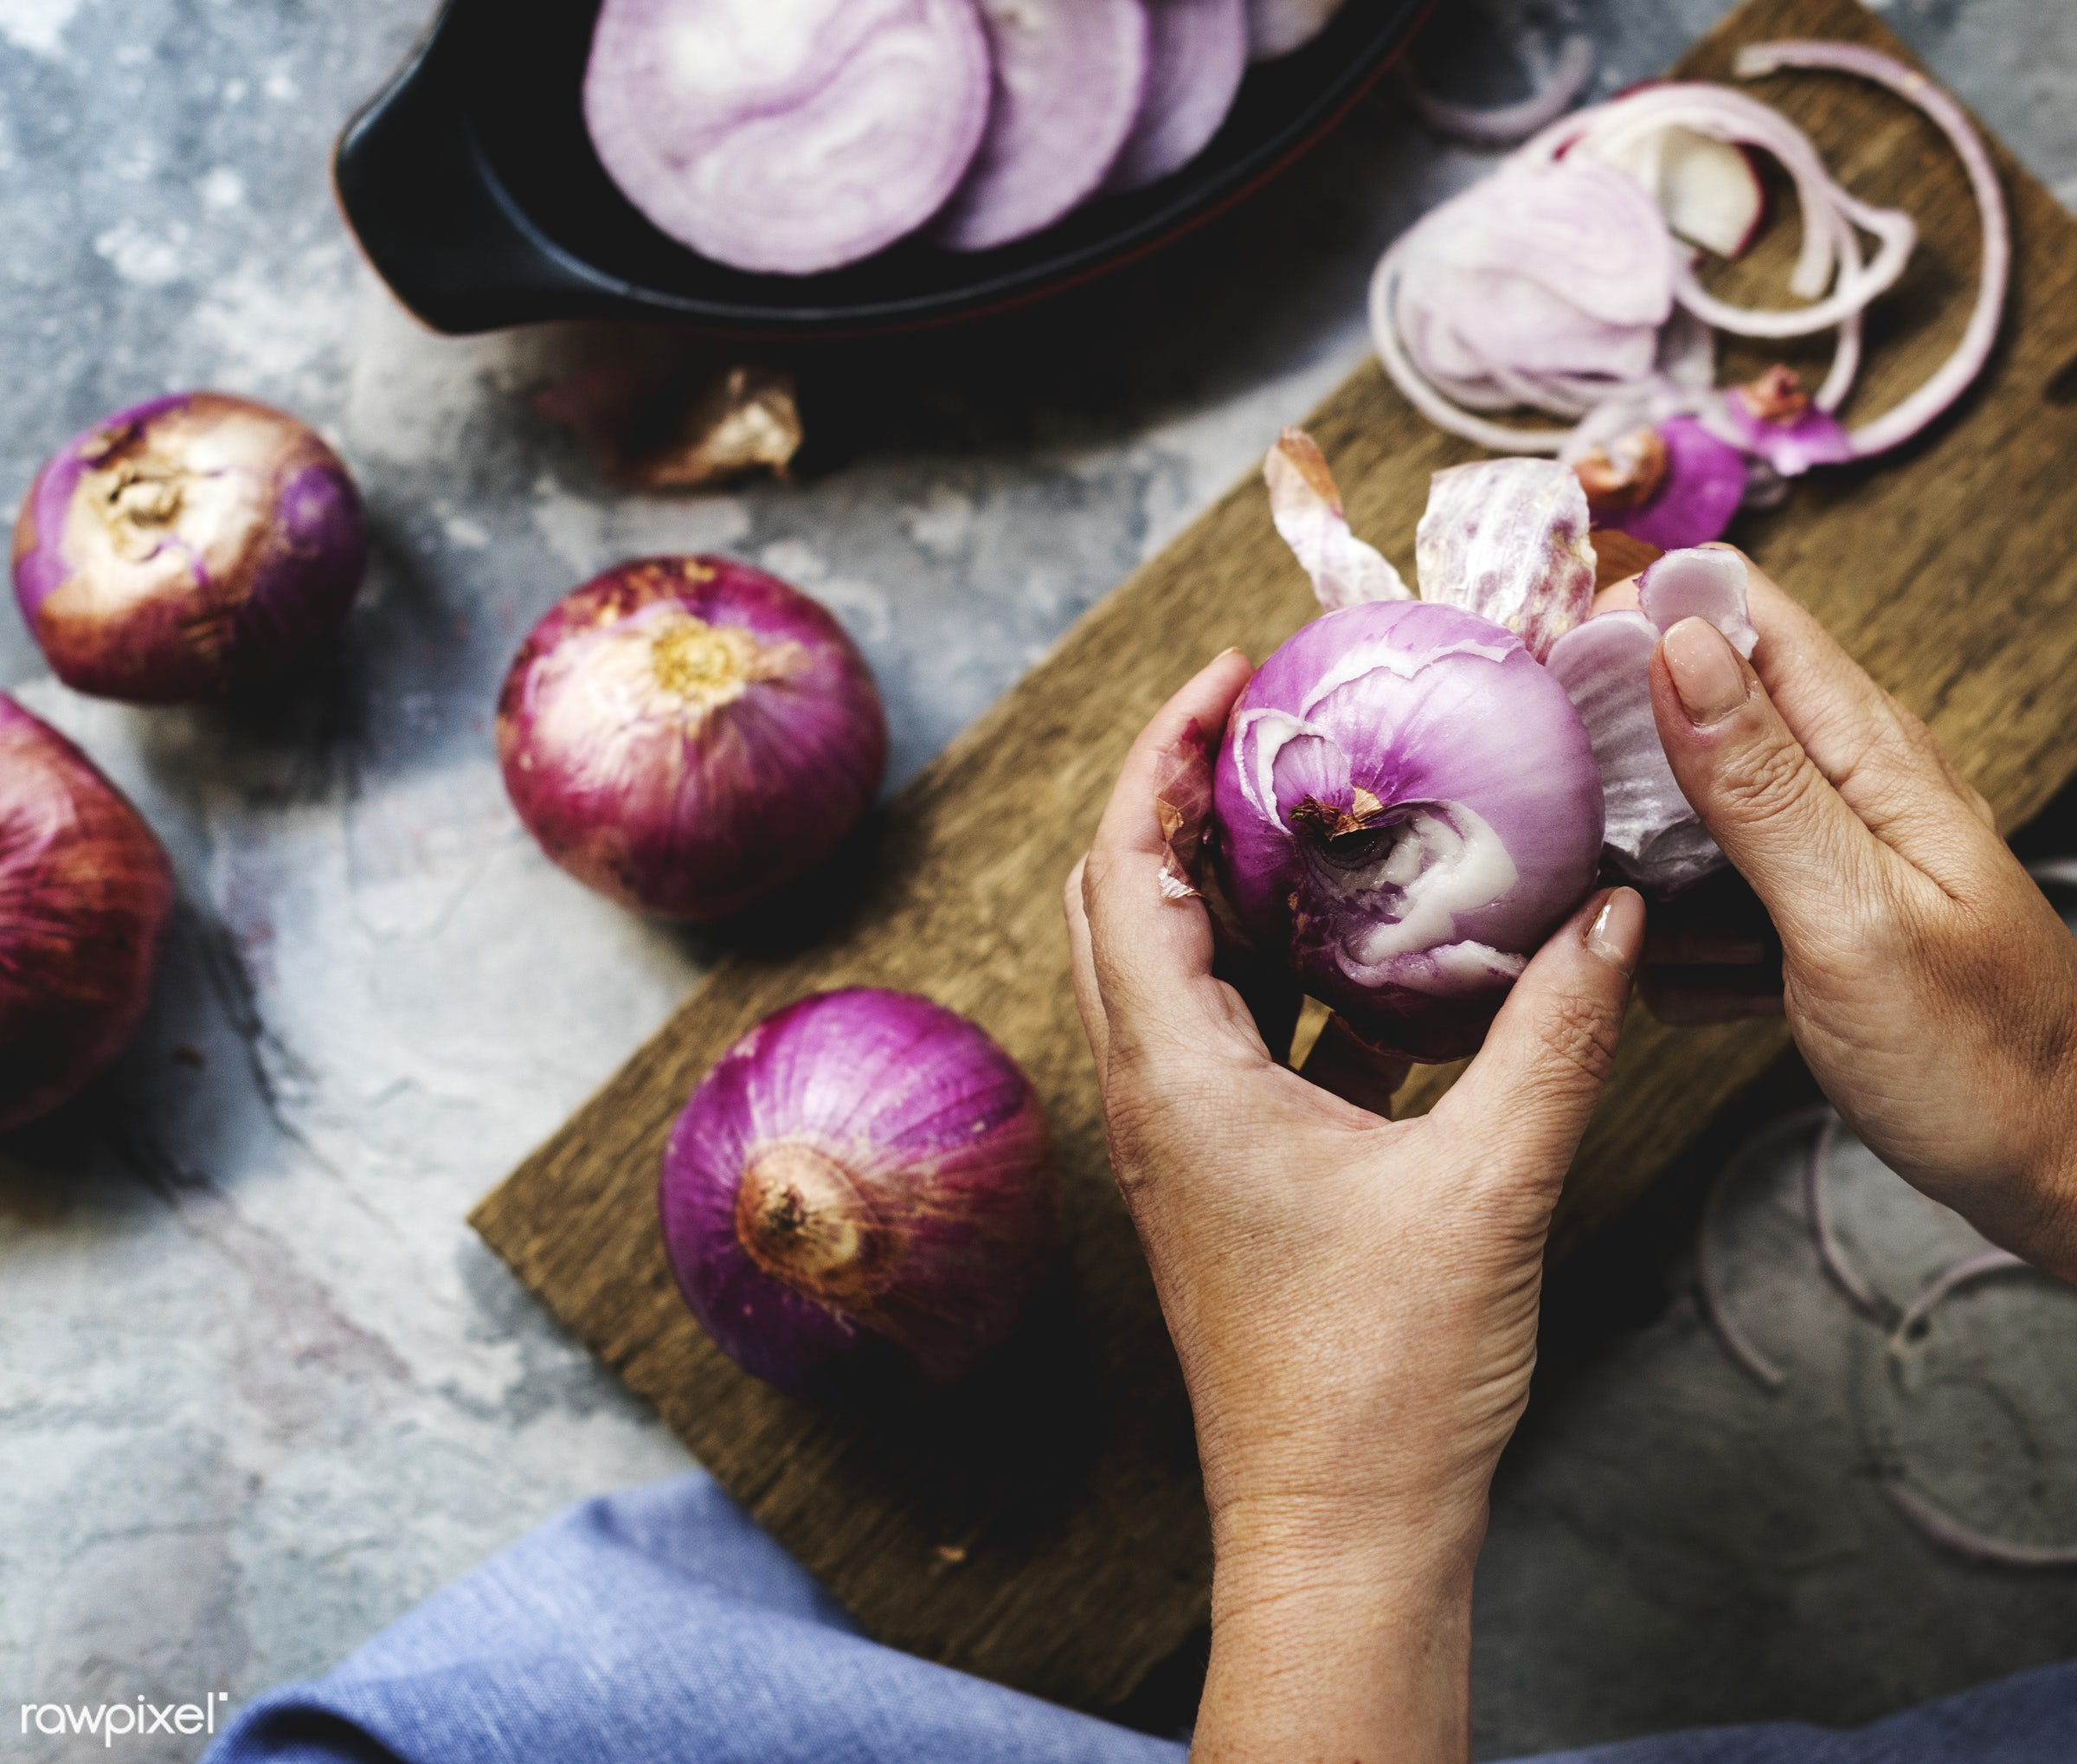 A person peeling red onion - raw, diverse, chopping board, farm, ingredients, farmer, nature, fresh, hands, products, peel,...